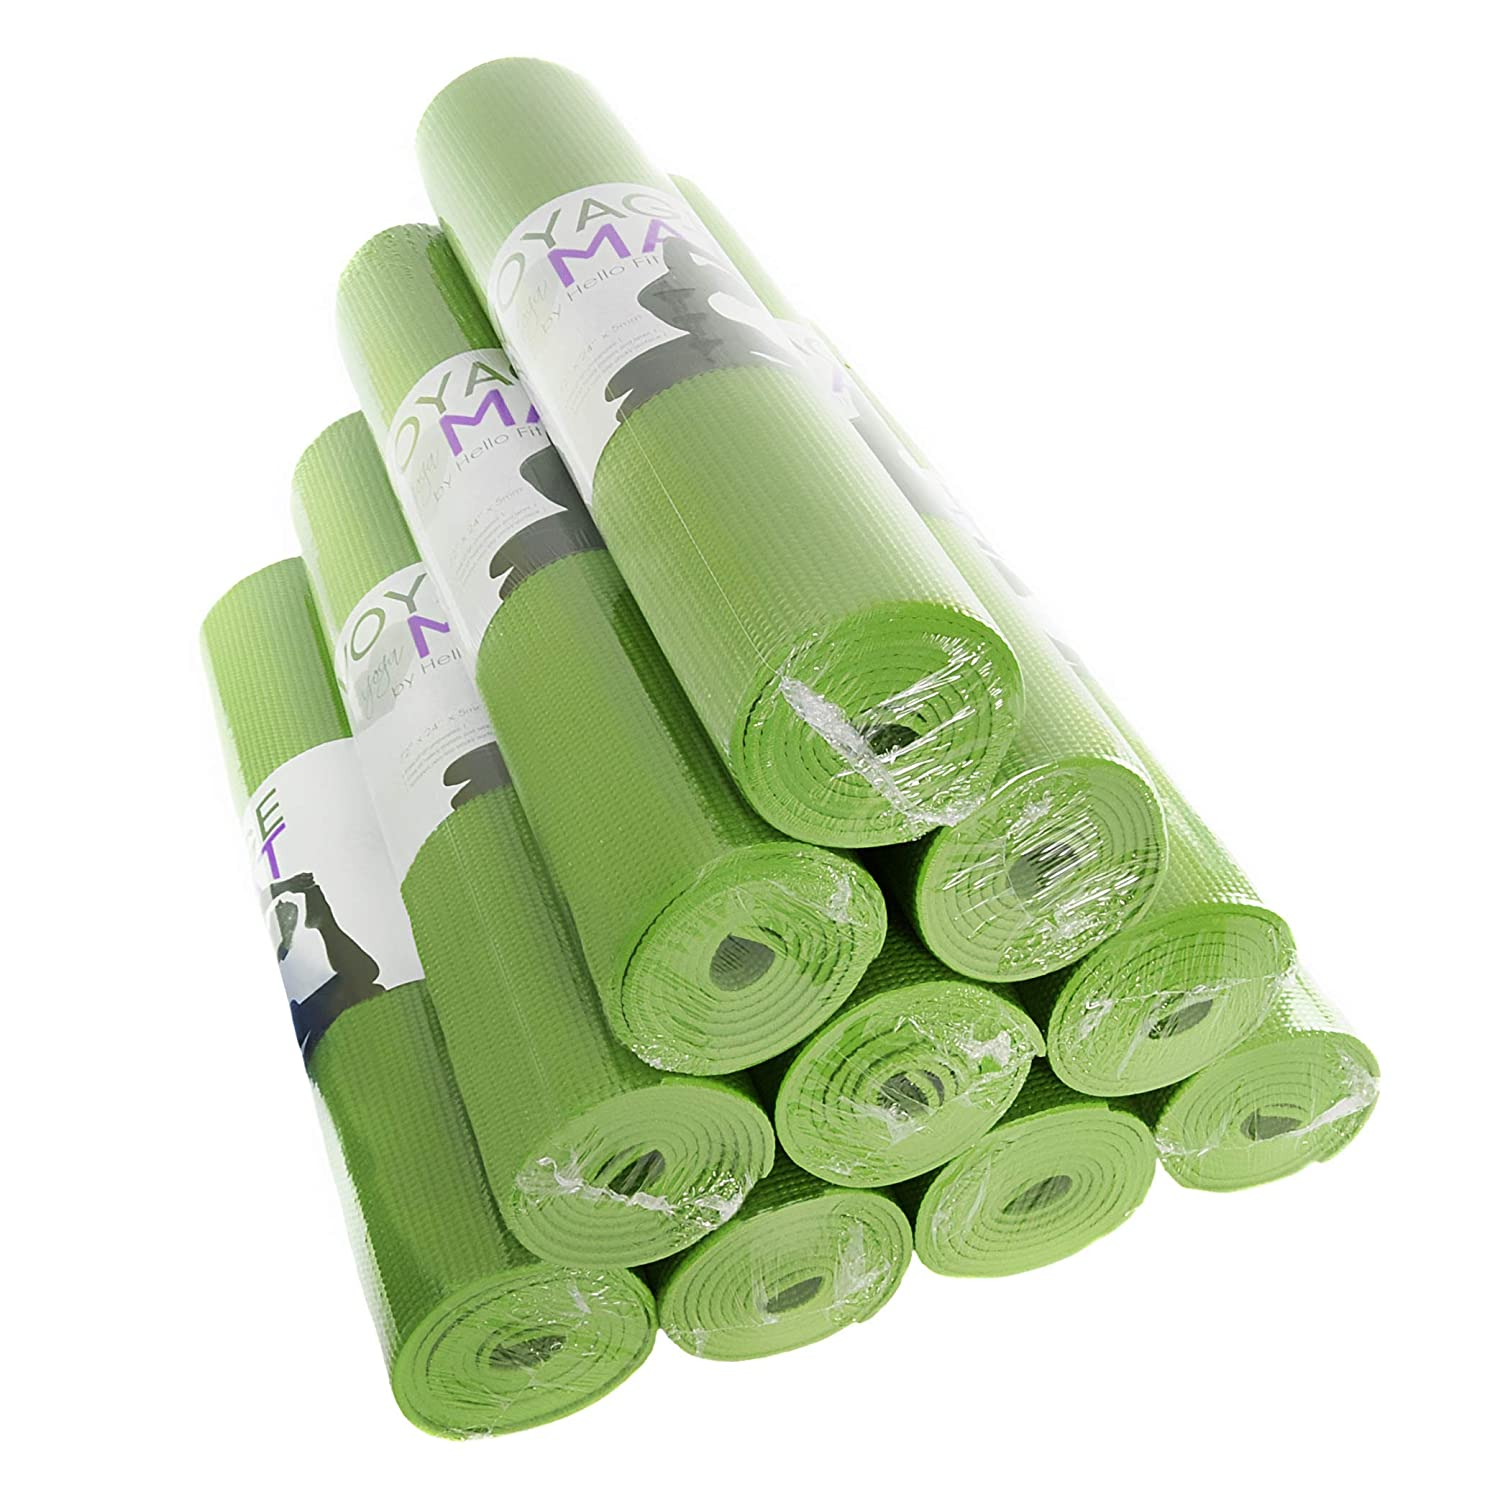 5mm Thick Extra Thick Lead and Latex Free 72 x 24 Inches Economy 10 Pack Hello Fit Voyage Yoga Mats